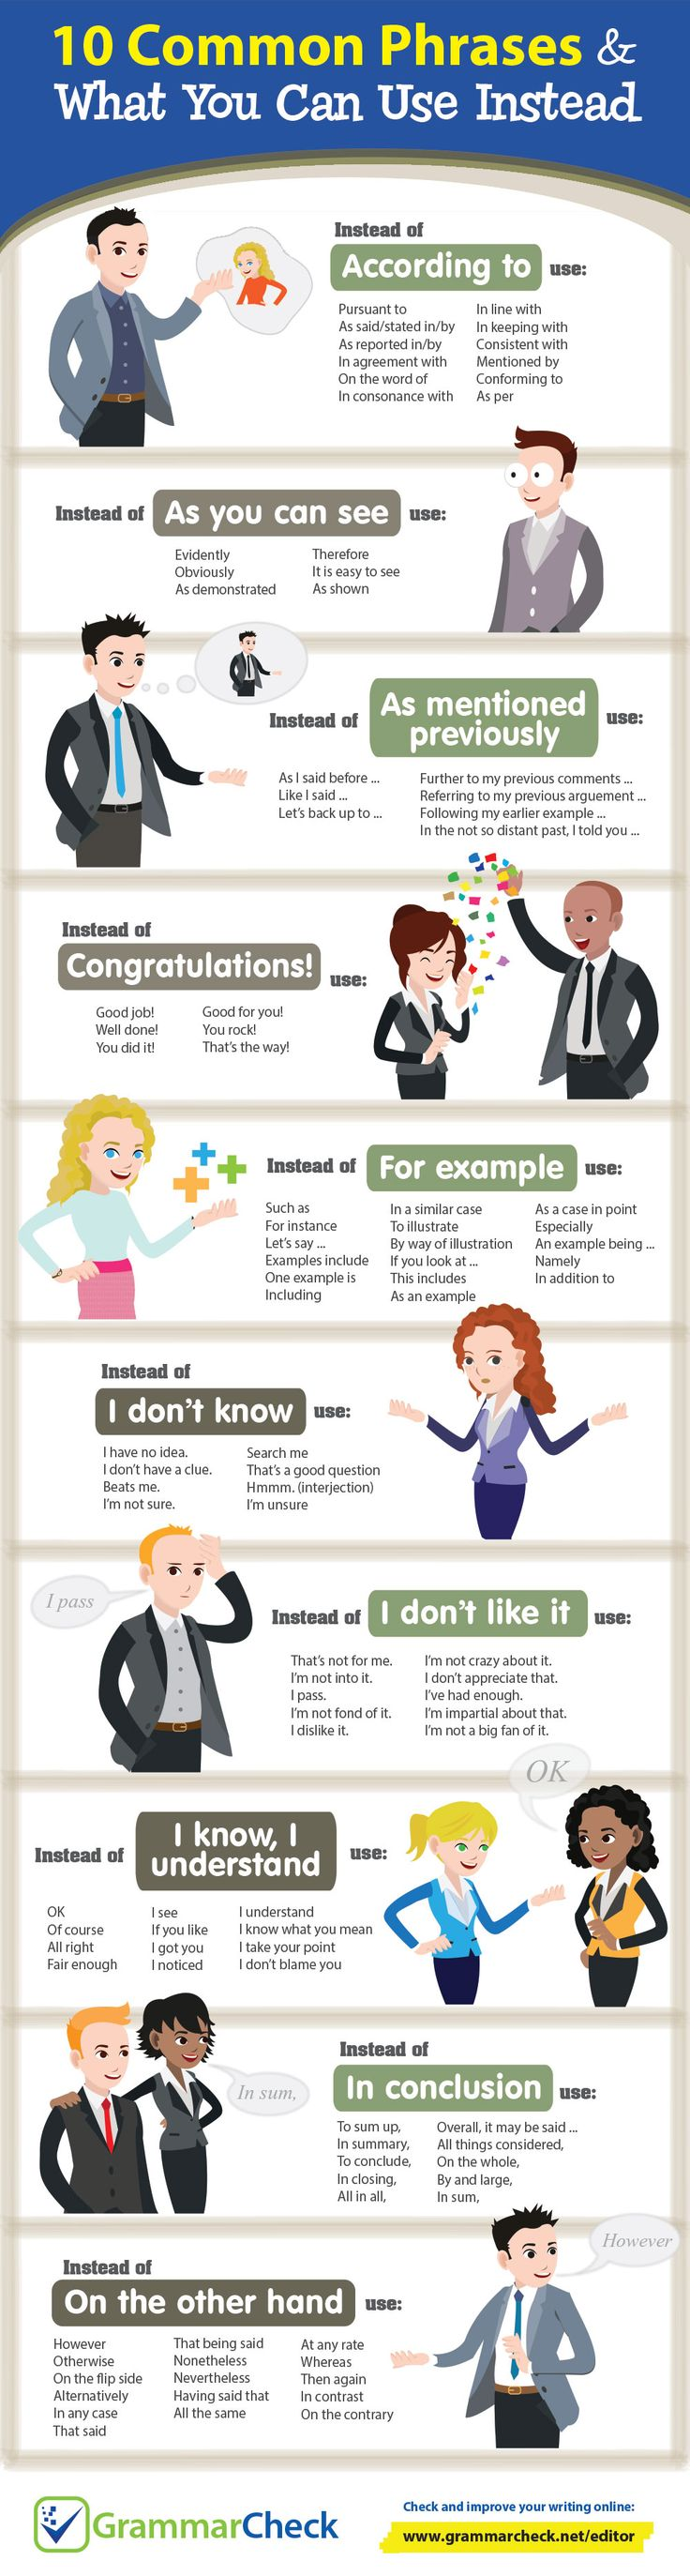 10 Common Phrases & What You Can Use Instead (Infographic)